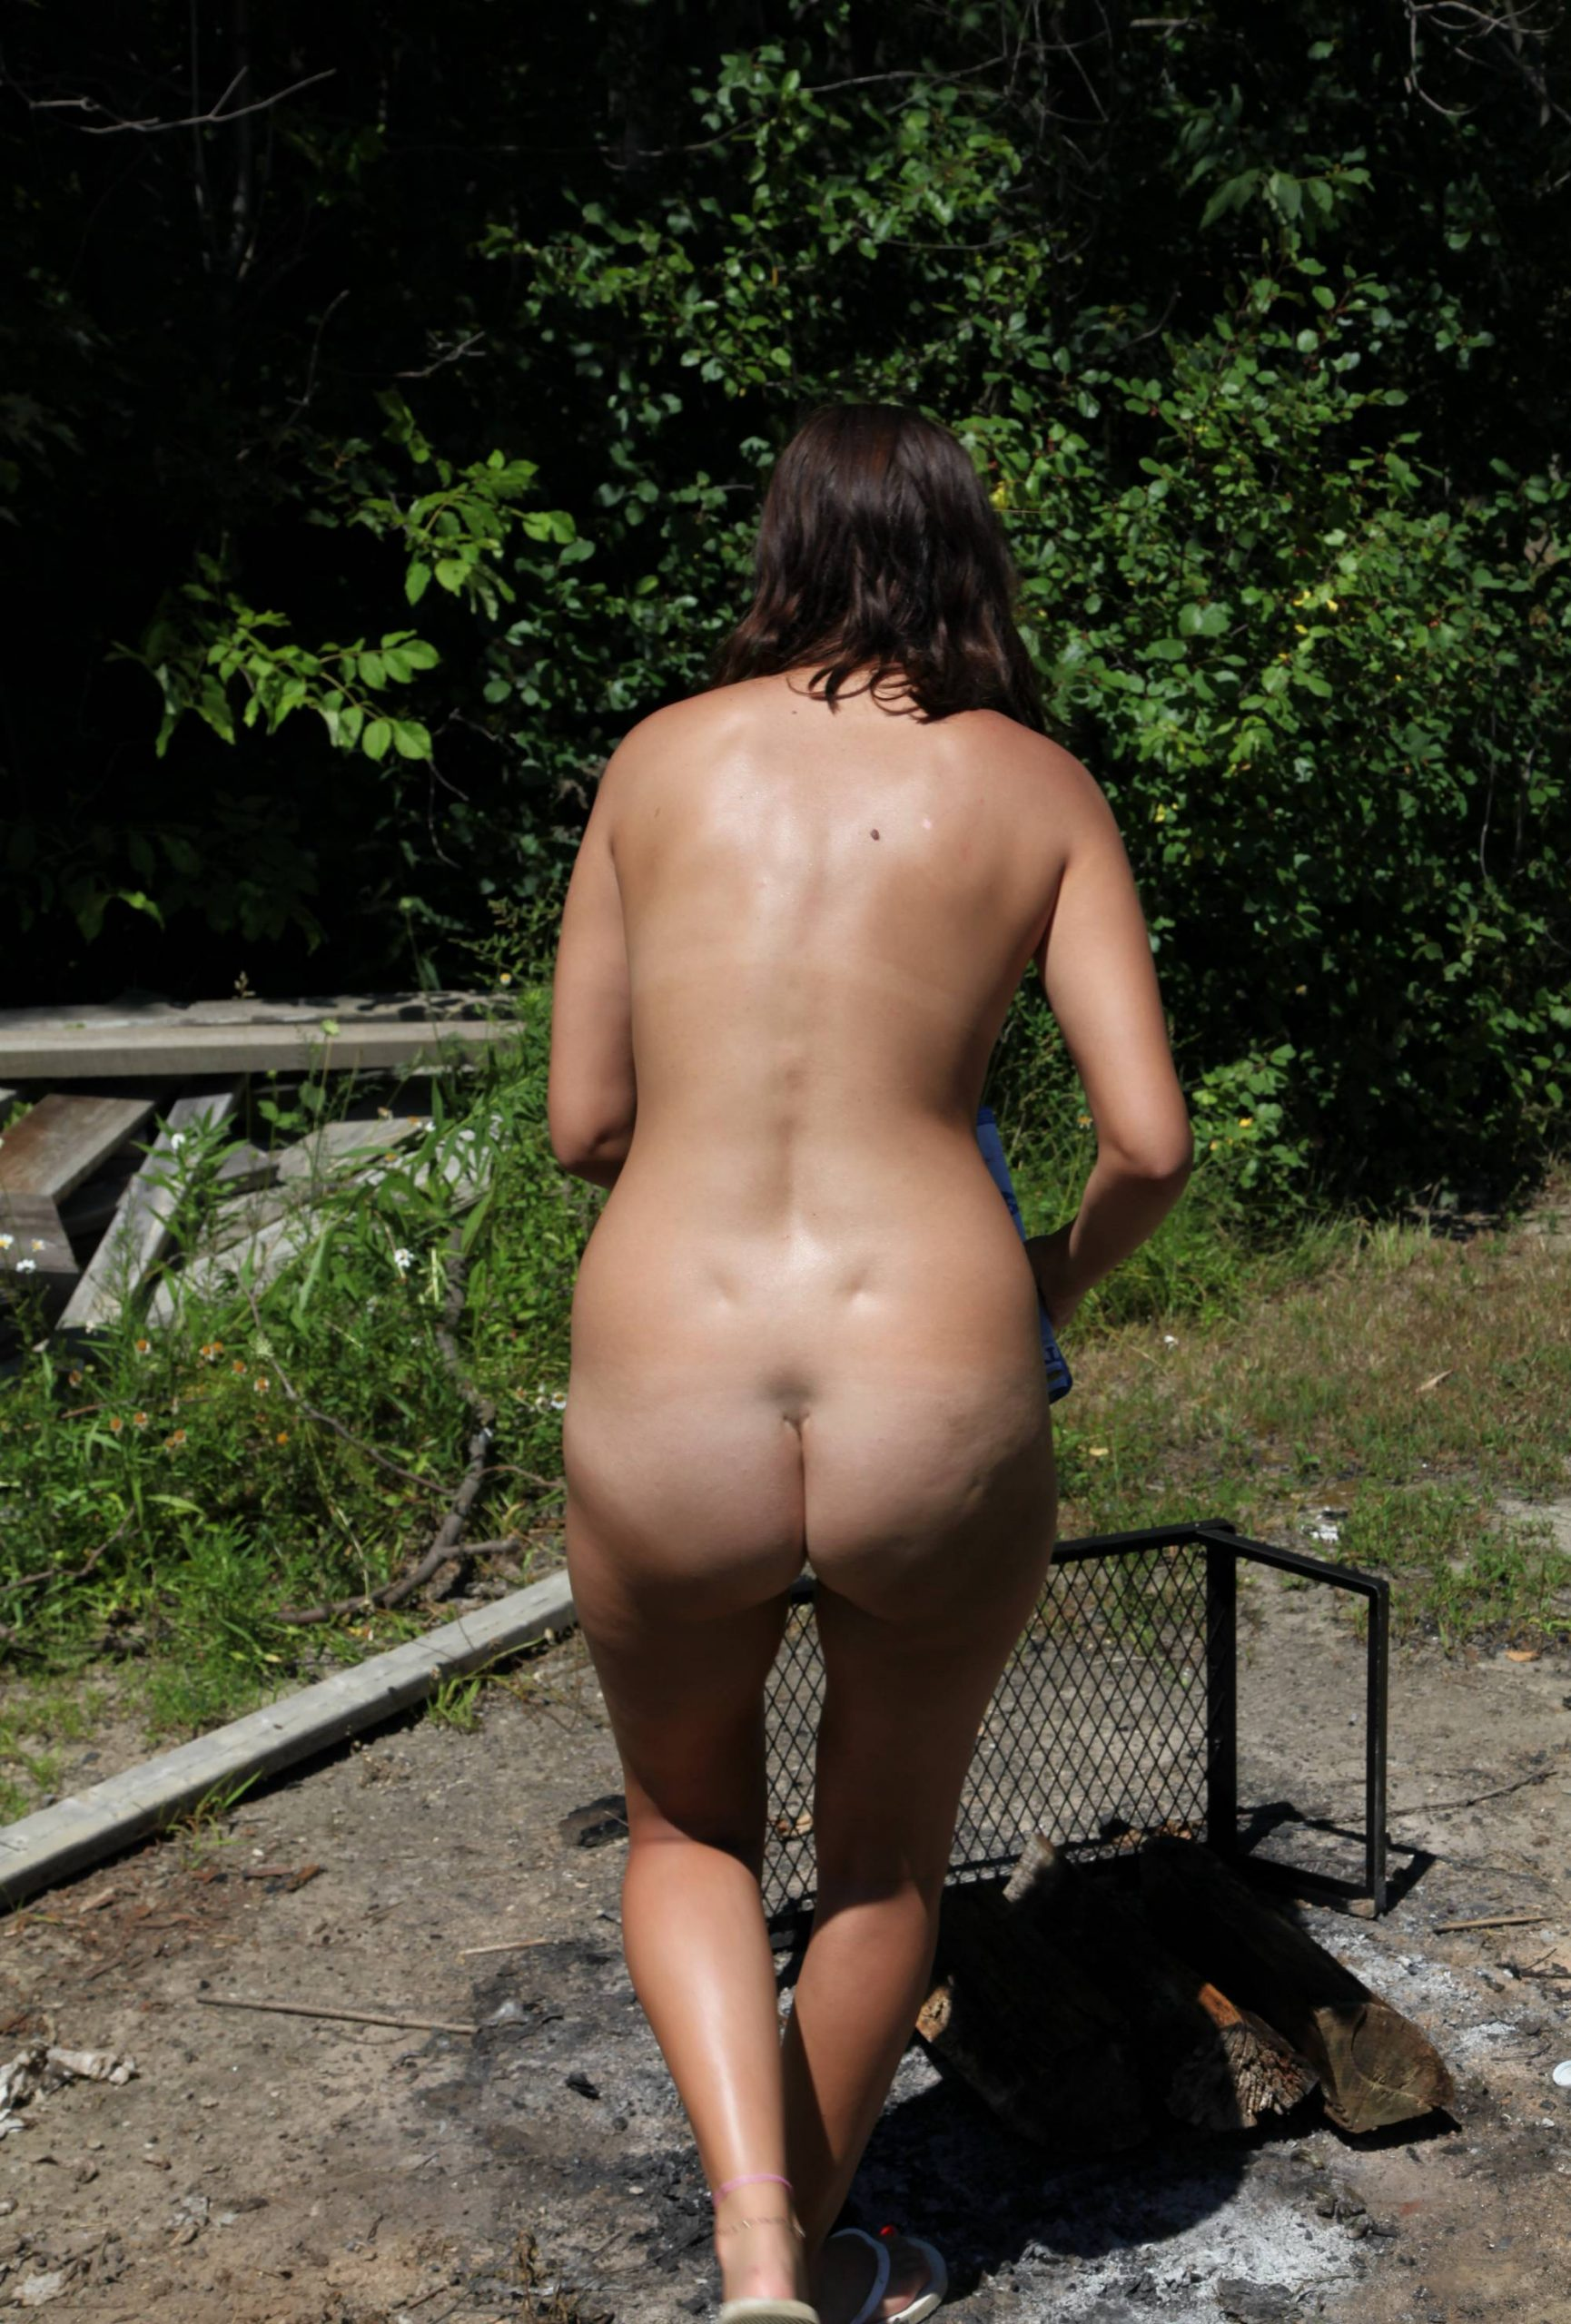 Pure Nudism-Barbecue Grilling Time - 2